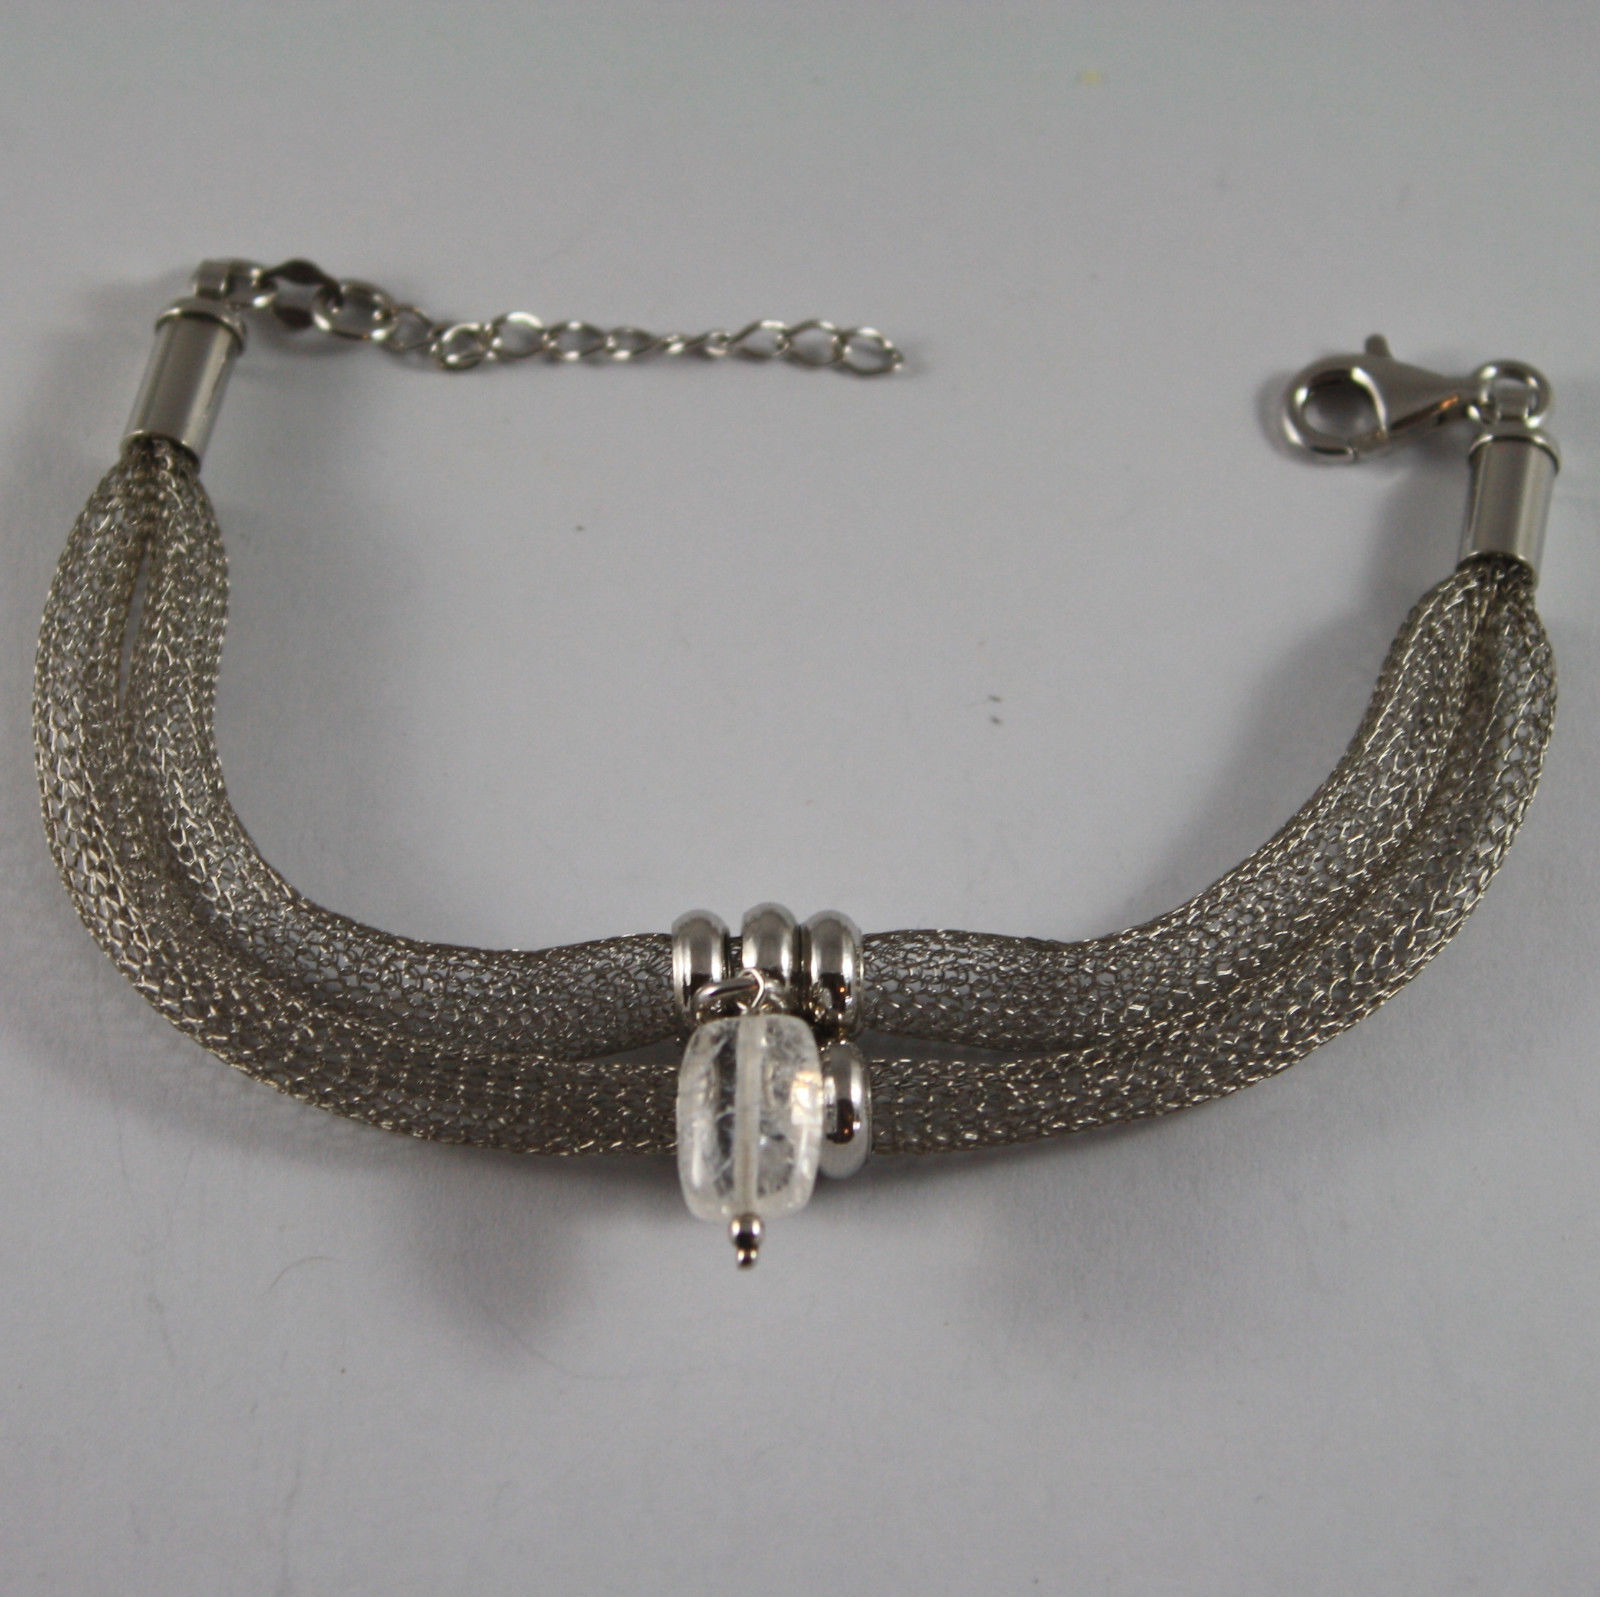 .925 RHODIUM SILVER BRACELET WITH TUBULAR MESH AND TRANSPARENT CRACK CRYSTAL